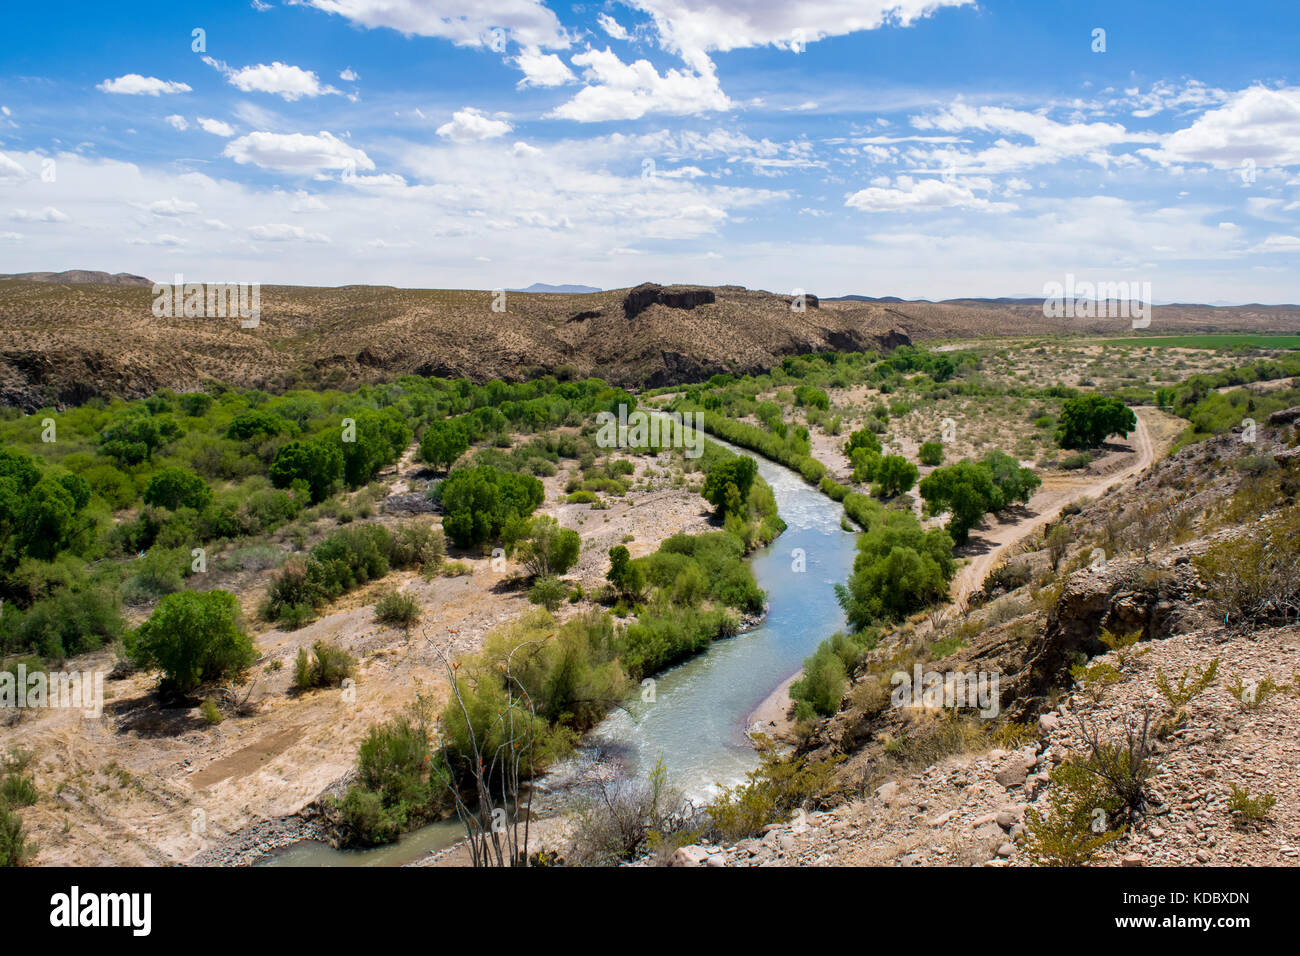 Gila River flowing through the Gila Box Riparian National Conservation Area near Safford, Arizona. Managed by the - Stock Image